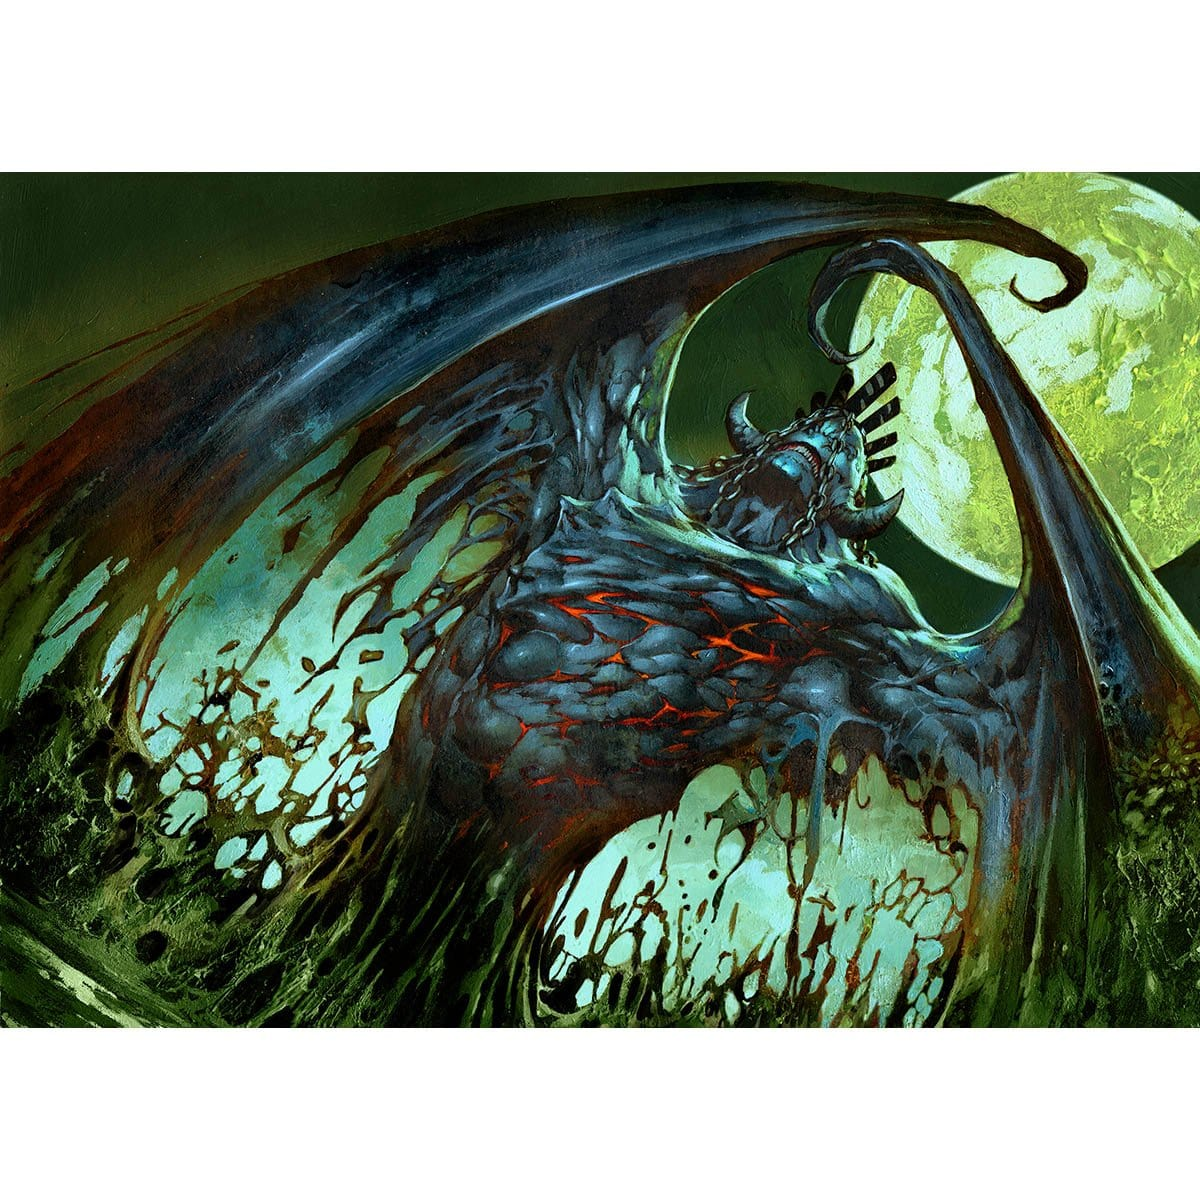 Demigod of Revenge Print - Print - Original Magic Art - Accessories for Magic the Gathering and other card games